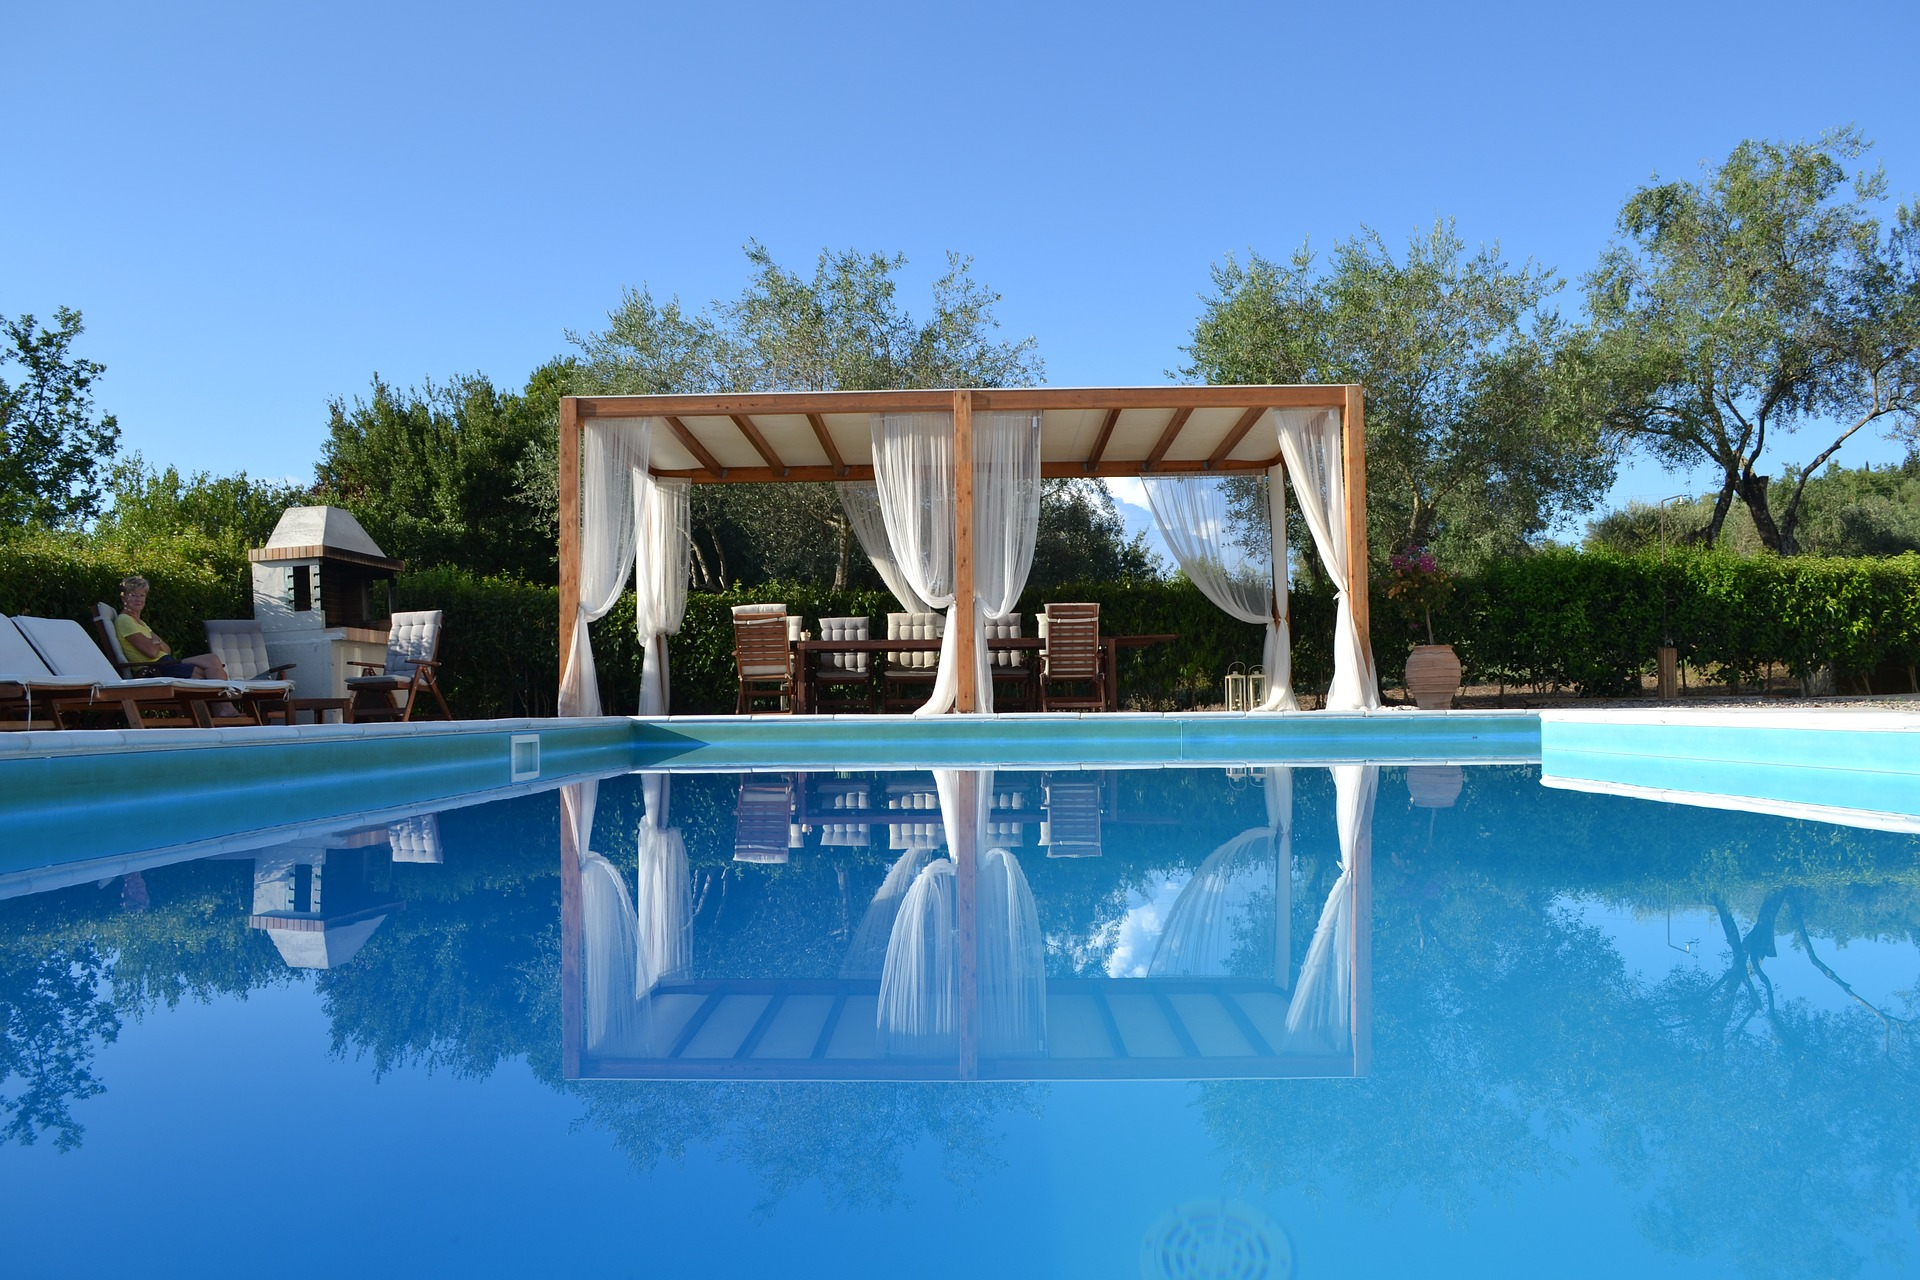 The Top 5 Reasons to Have Utopian LVH Manage Your Luxury Vacation Home